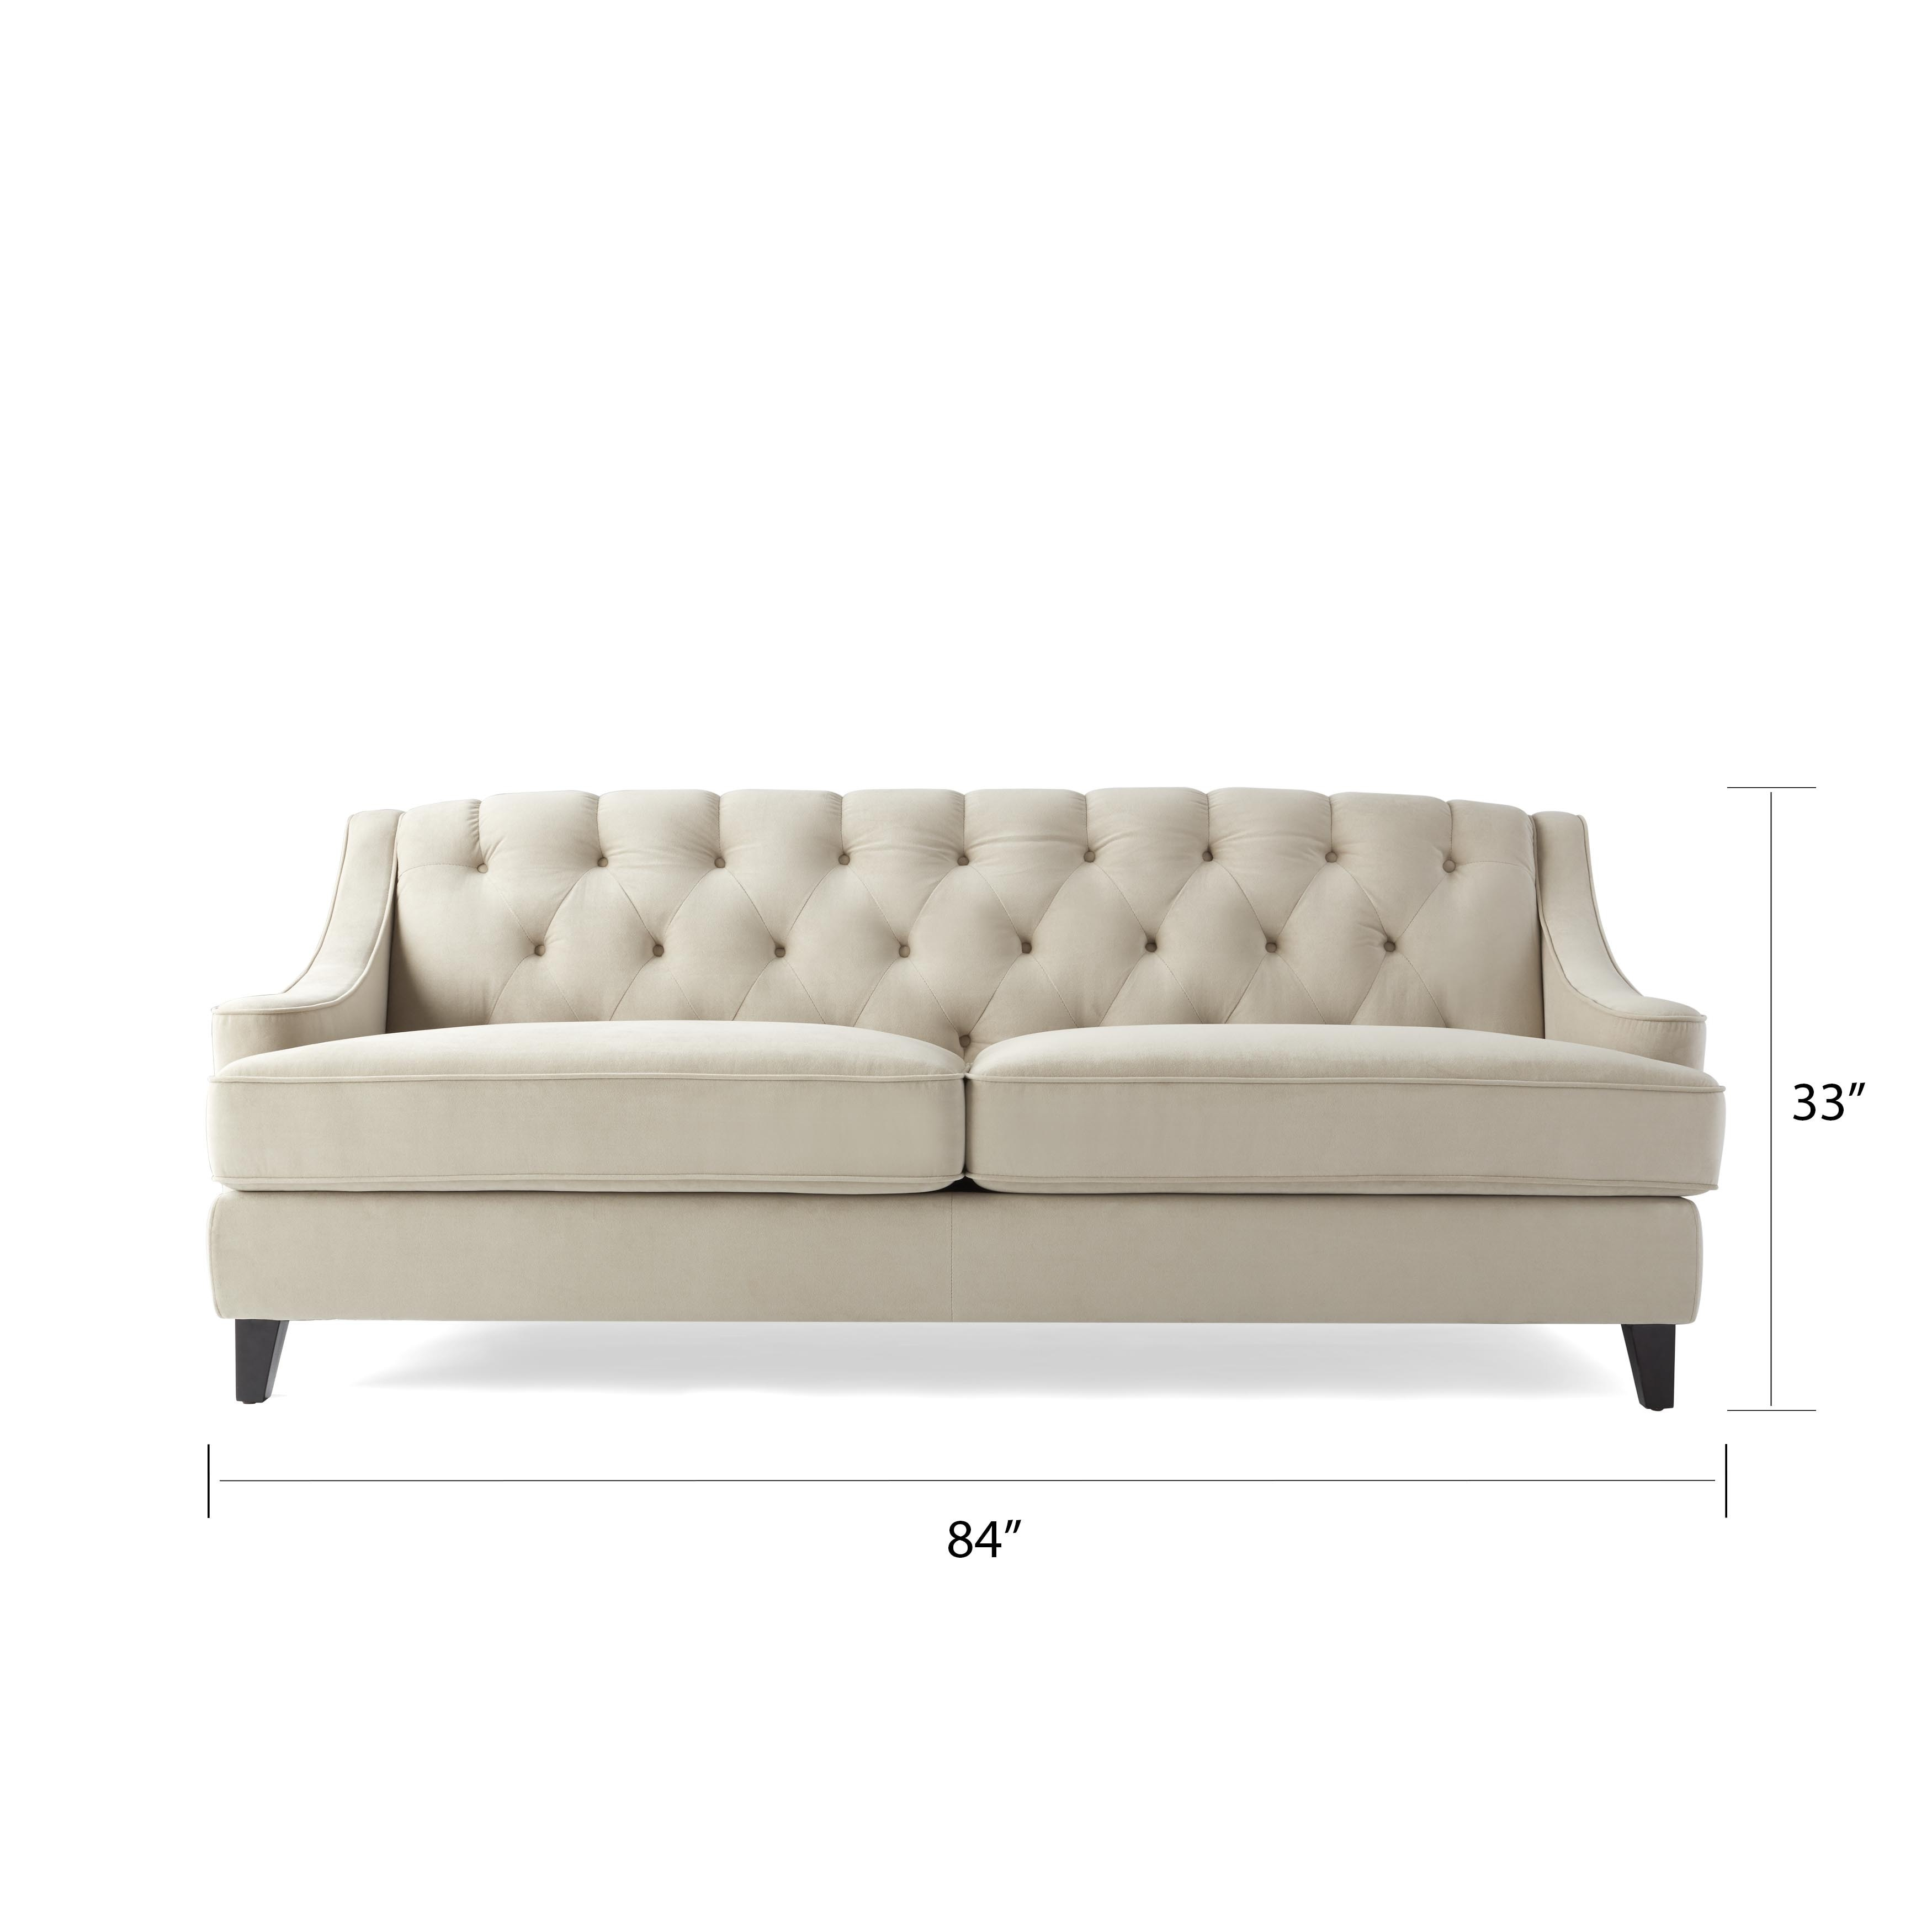 size for spaces set recliners furniture power studded oversized floating loveseats target shelves couch snazzy ideas design livingroom tufted sofa square room white rugs as full living inspiration and modern small macys decorations mid sectional almafi leather ottoman chloe sofas with chic cheap century on of